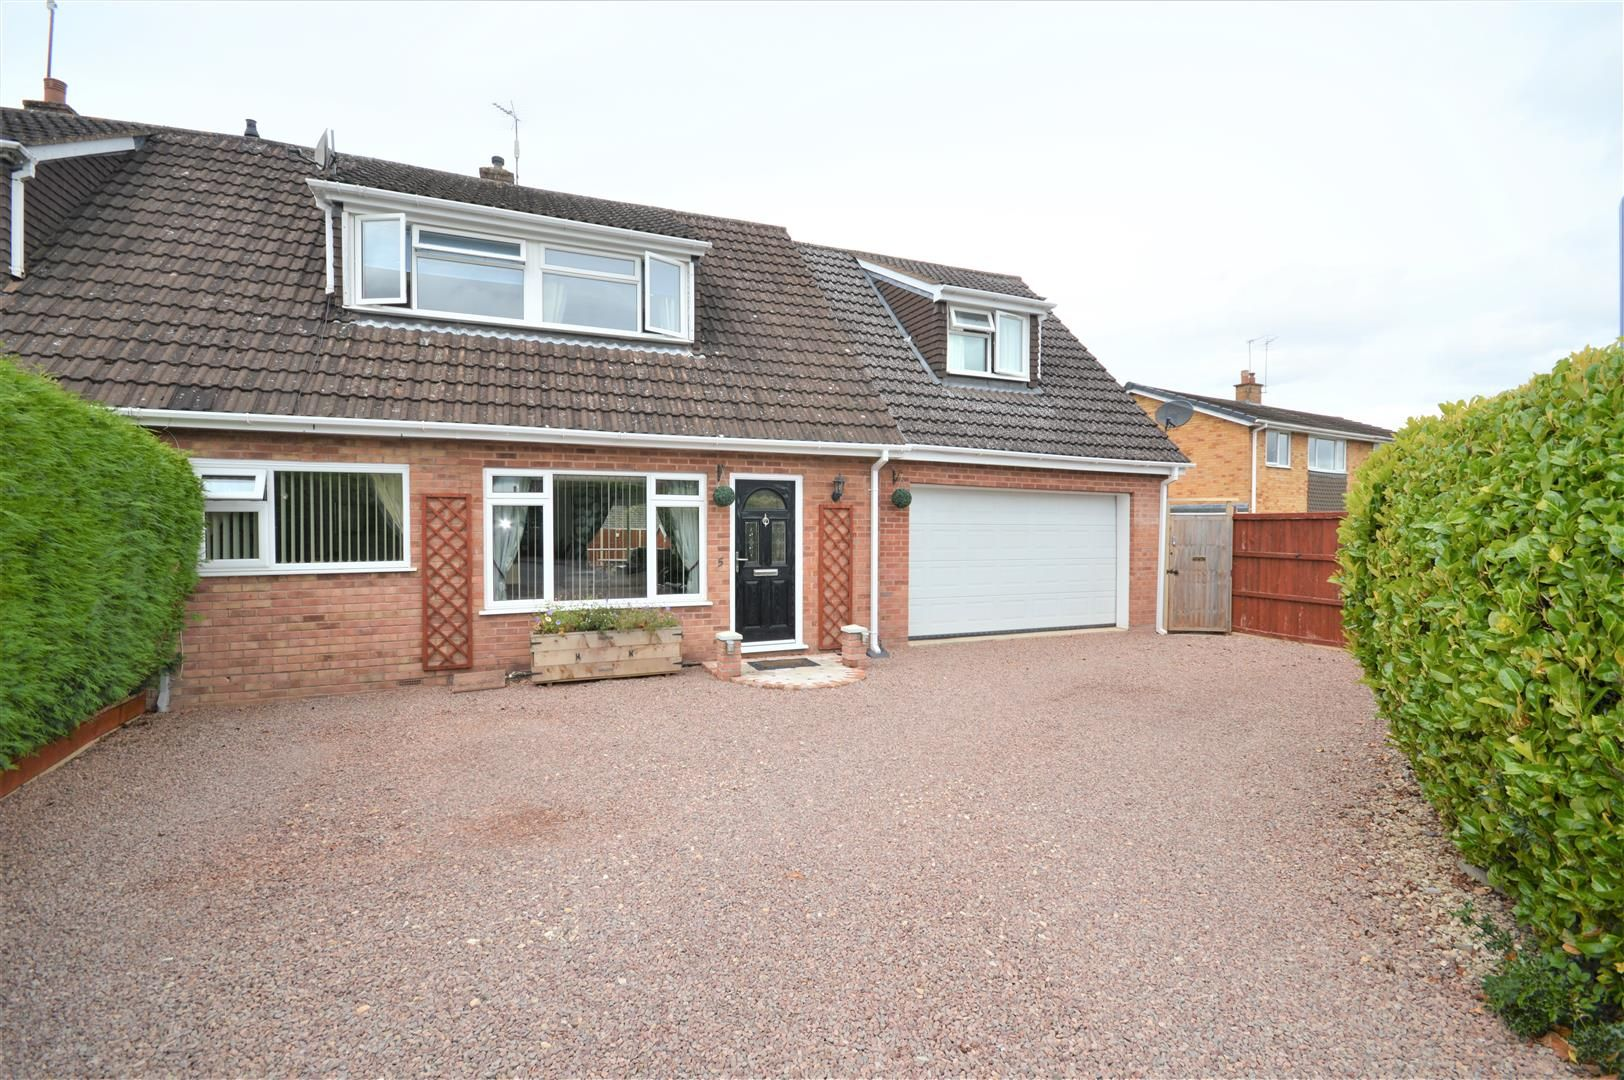 4 bed semi-detached for sale in Clehonger 1